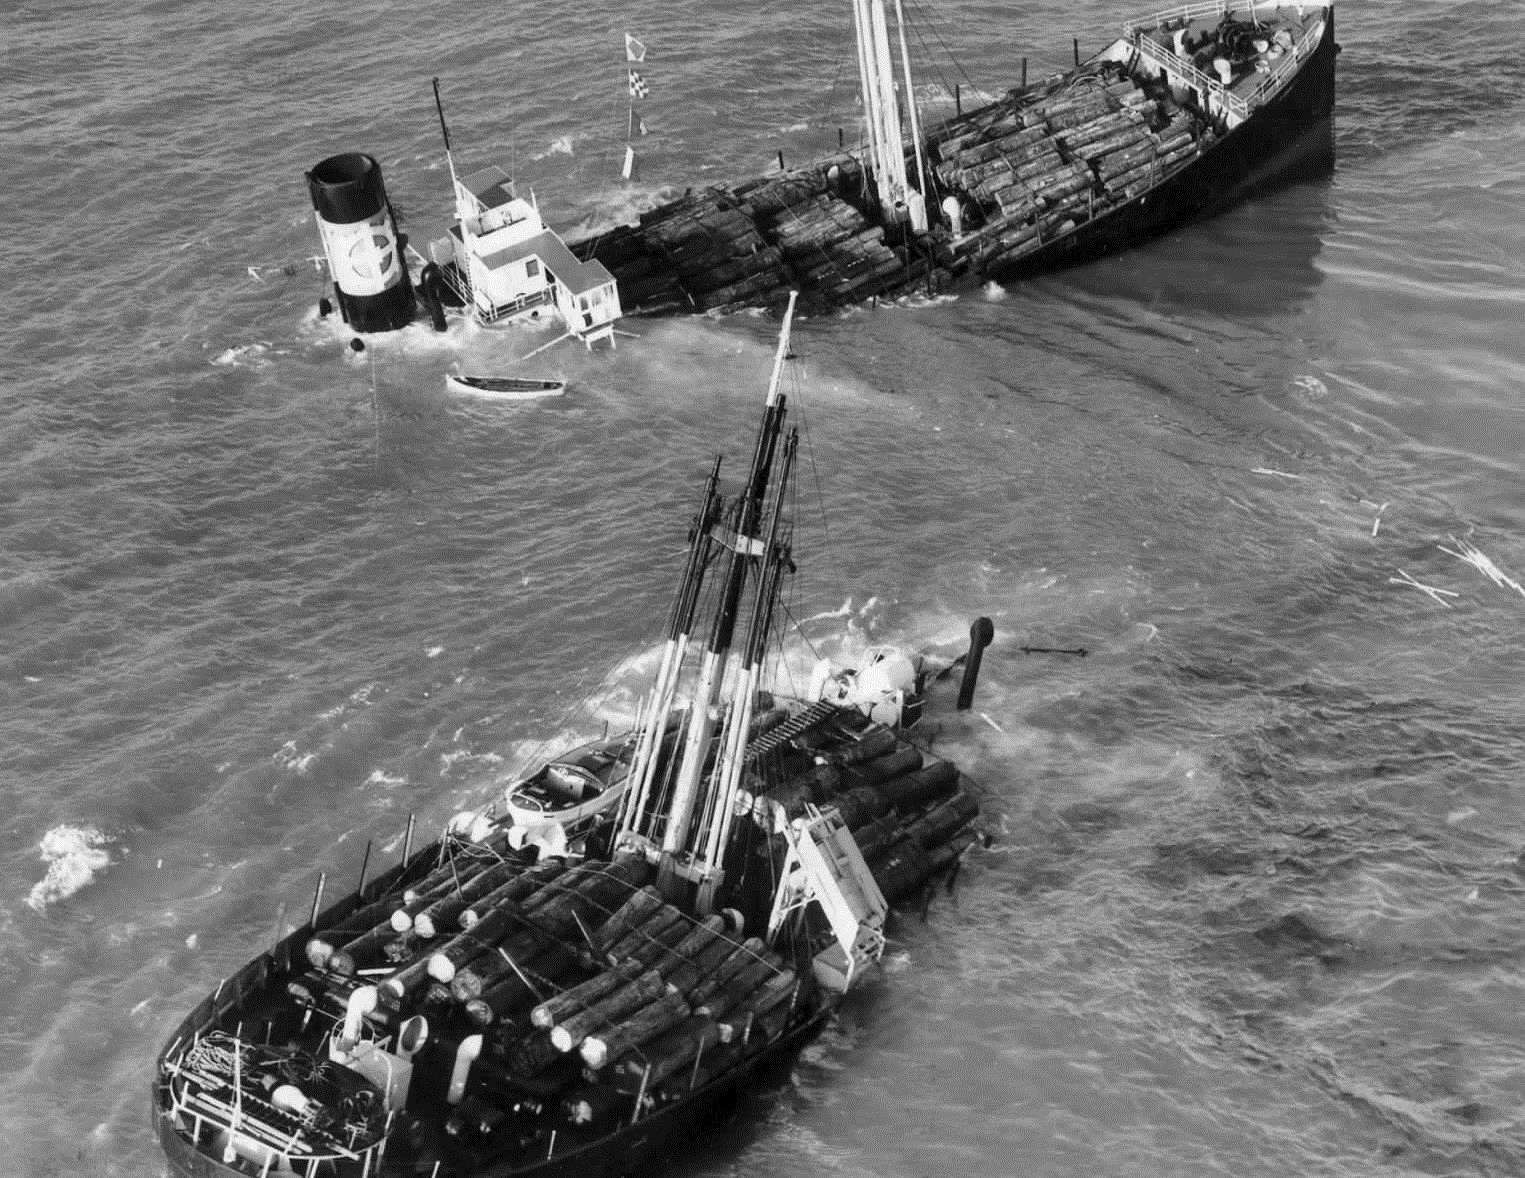 AGEN wrecked on the Goodwin Sands in 1952